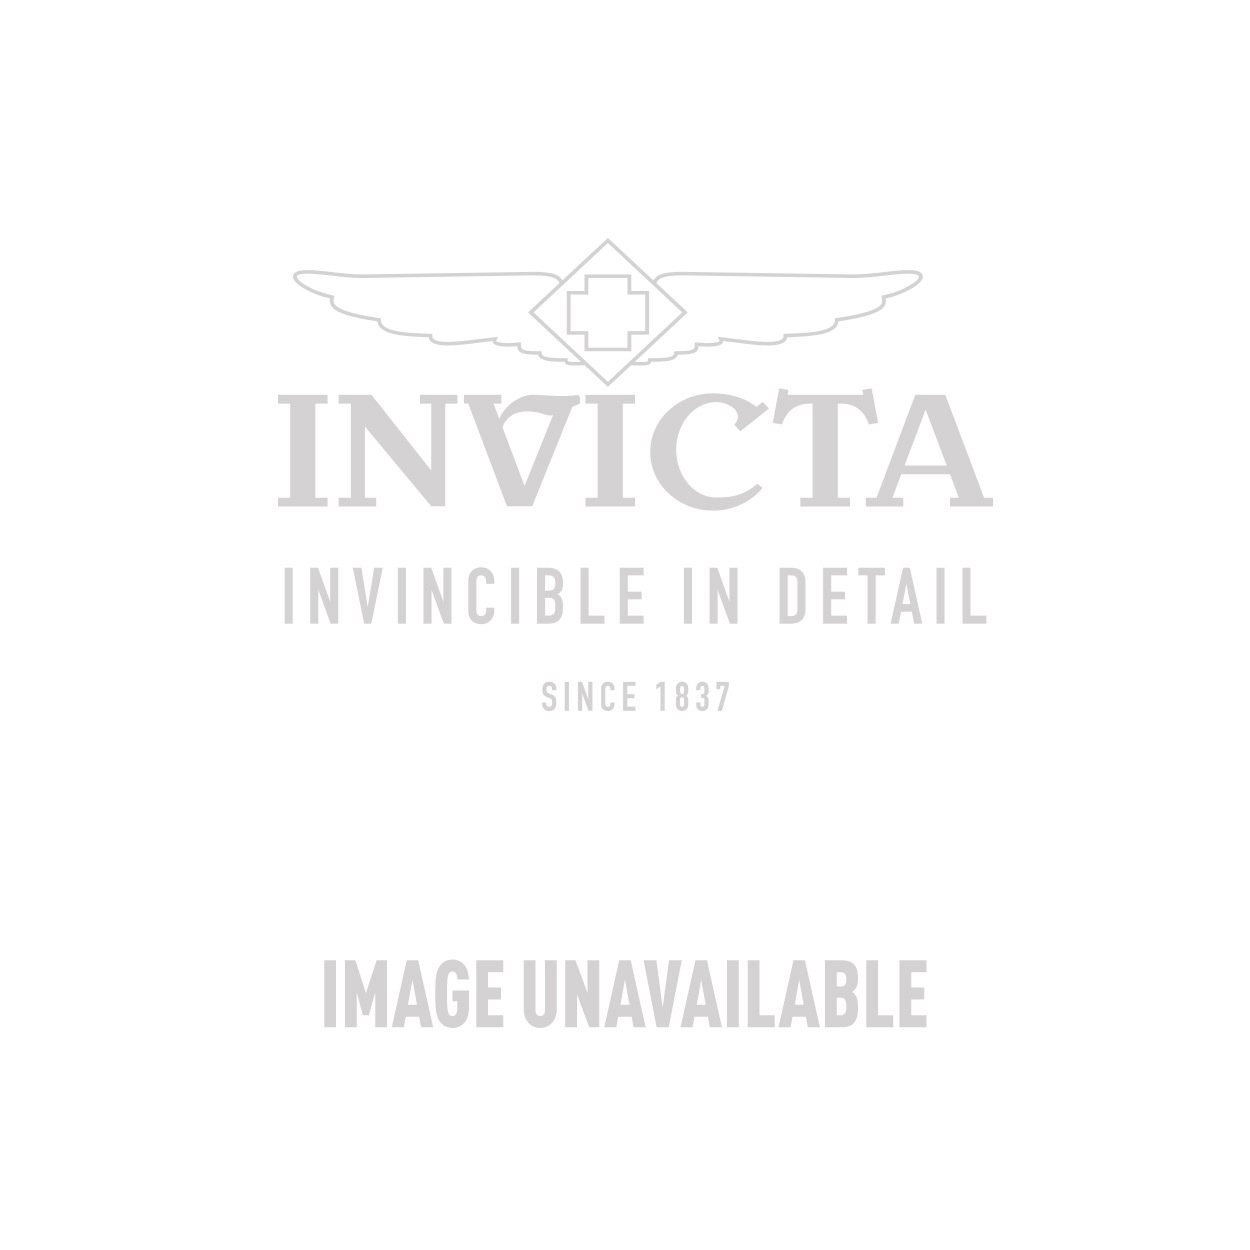 Invicta Corduba Quartz Watch - Stainless Steel case with Brown tone Leather band - Model 18991